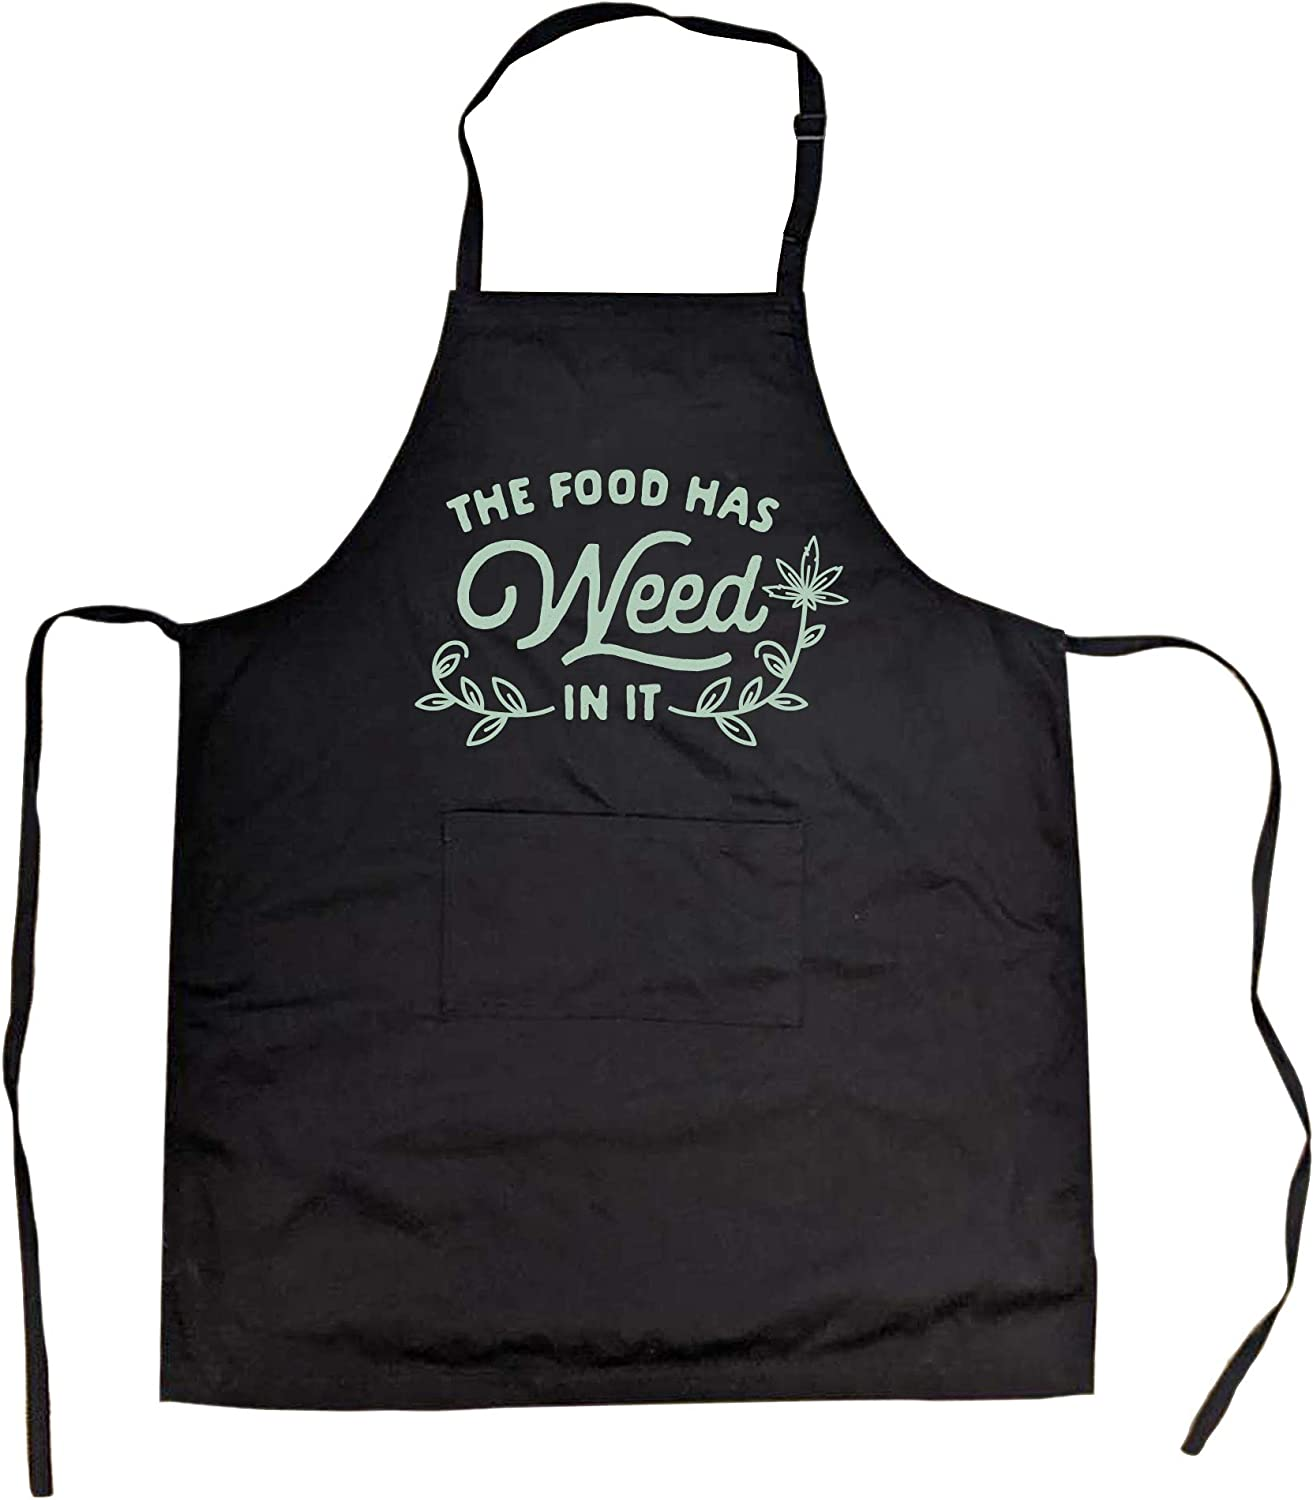 Crazy Dog T-Shirts Cookout Apron The Food in Has Sale special price 4 Funny Weed It Recommended